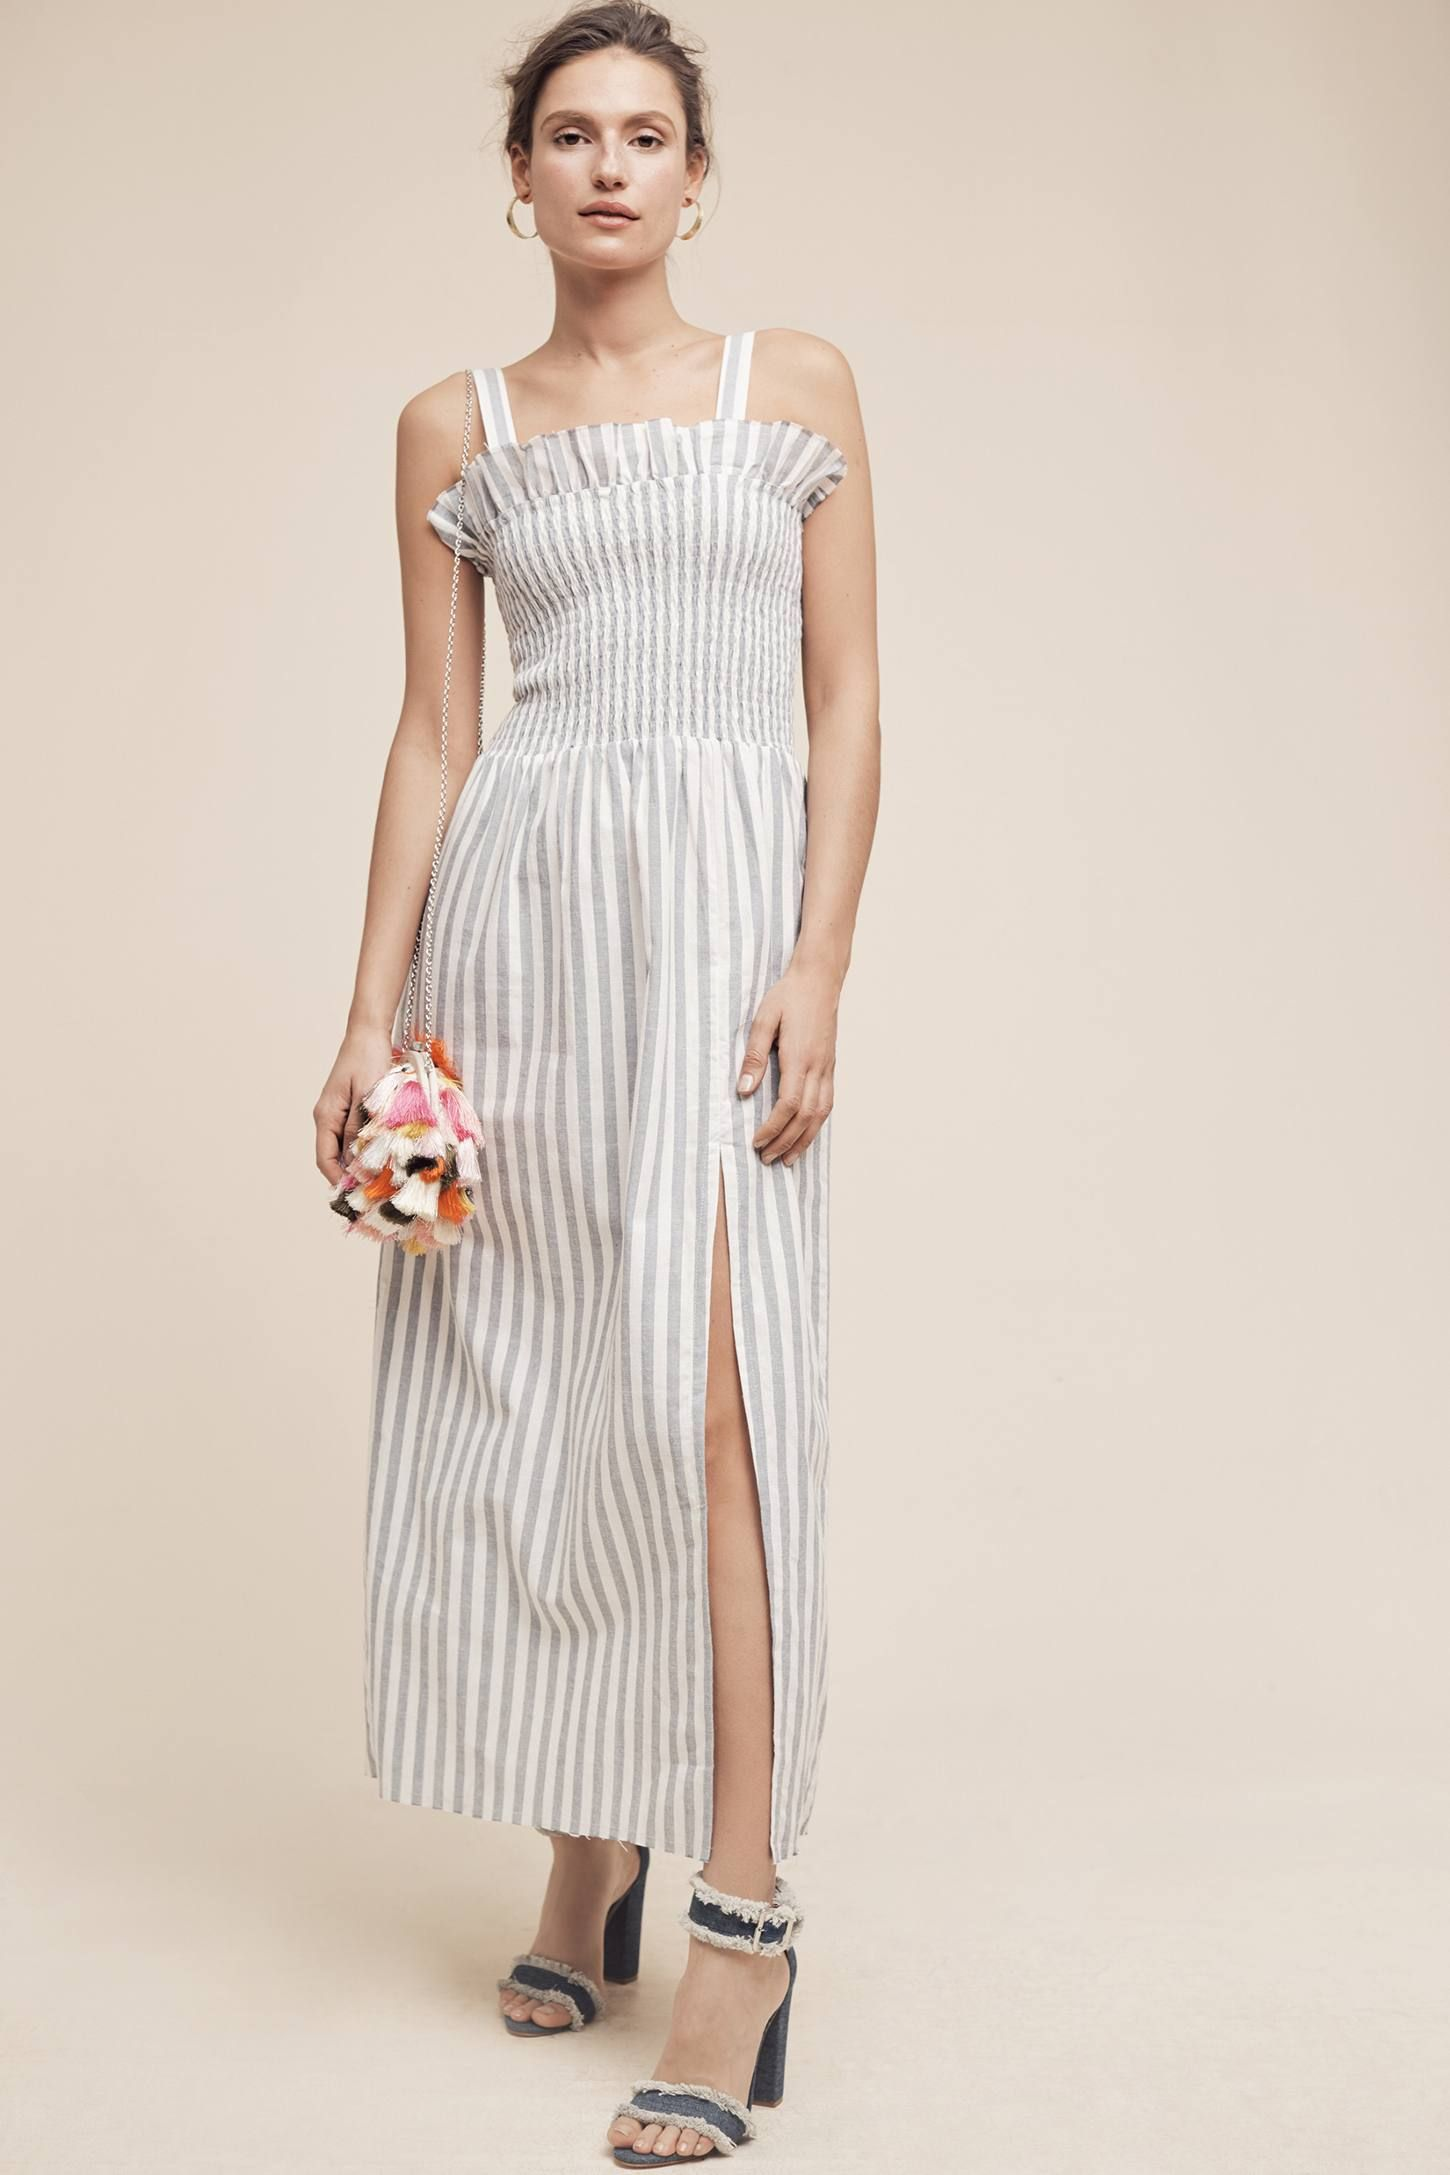 cf3be0fdfc Shop the Smocked & Striped Midi Dress and more Anthropologie at  Anthropologie today. Read customer reviews, discover product details and  more.